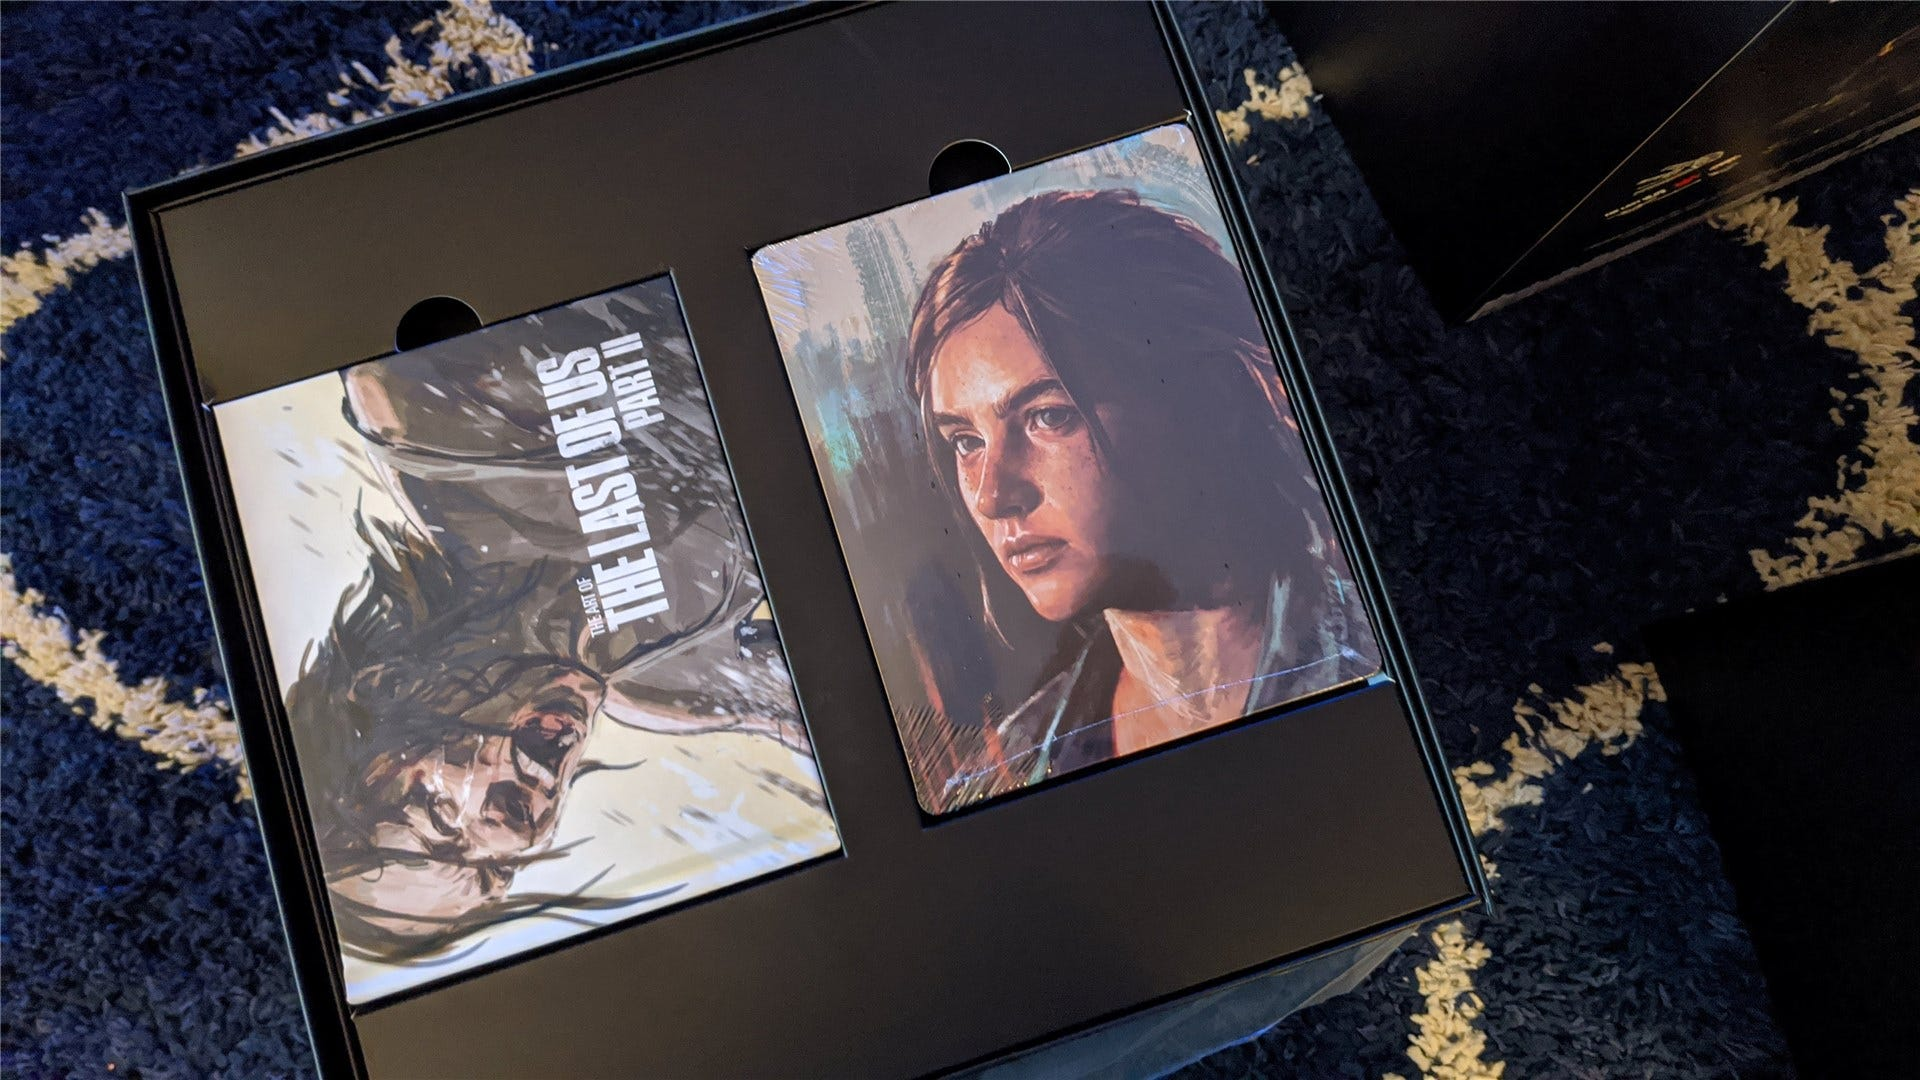 The Last of Us Part II Collector's Edition mini art book and SteelCase